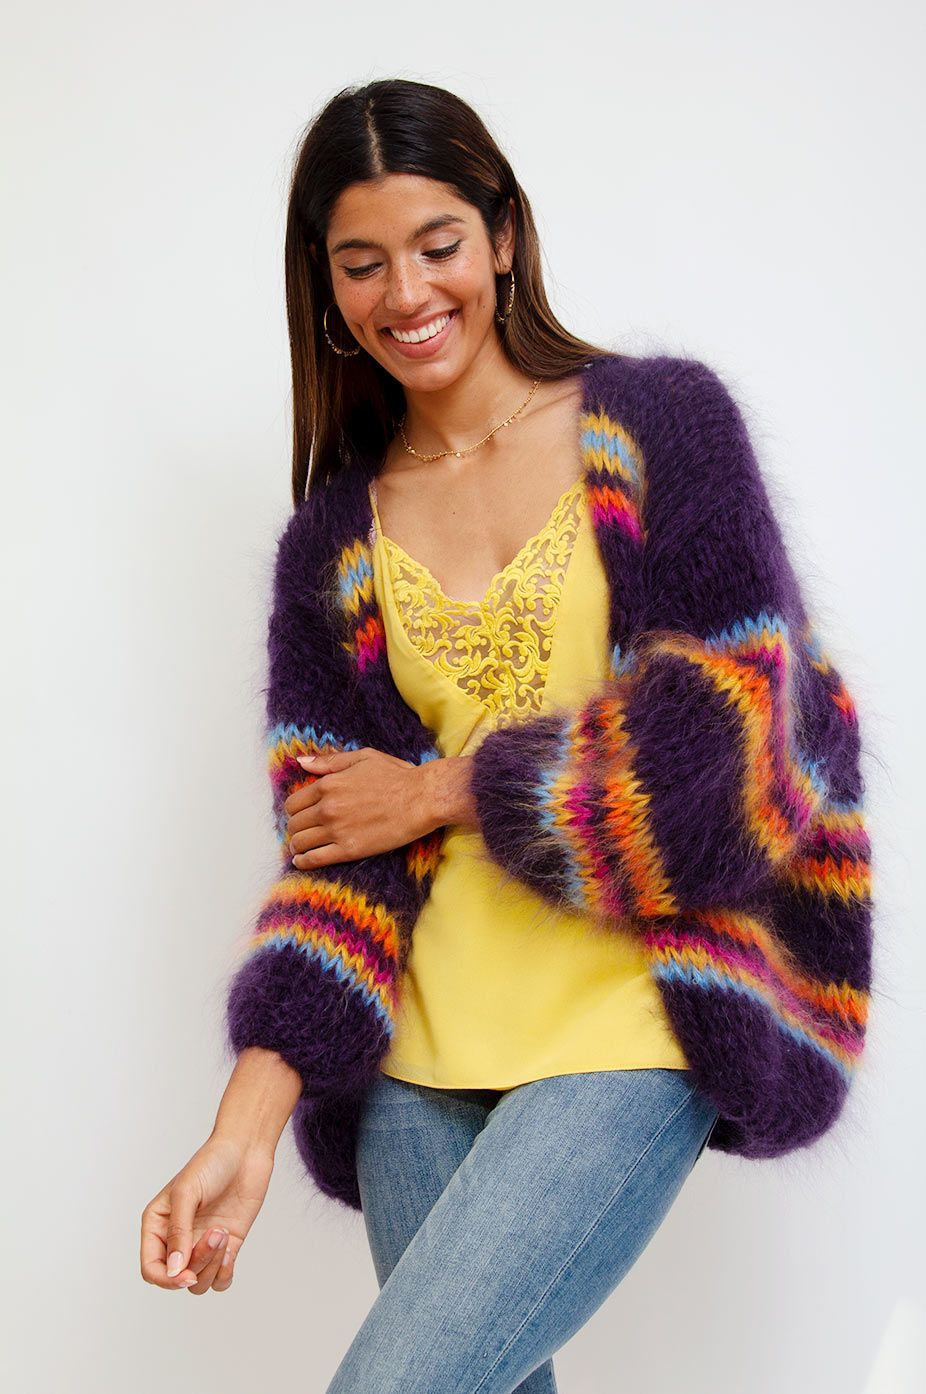 Oversized, fuzzy and warm: this multicolor cardigan is handmade from high-quality wool and will make you feel cozy all winter. This stand-out knited dream will add a luxurious feel to your look. By Les Tricots D'o.